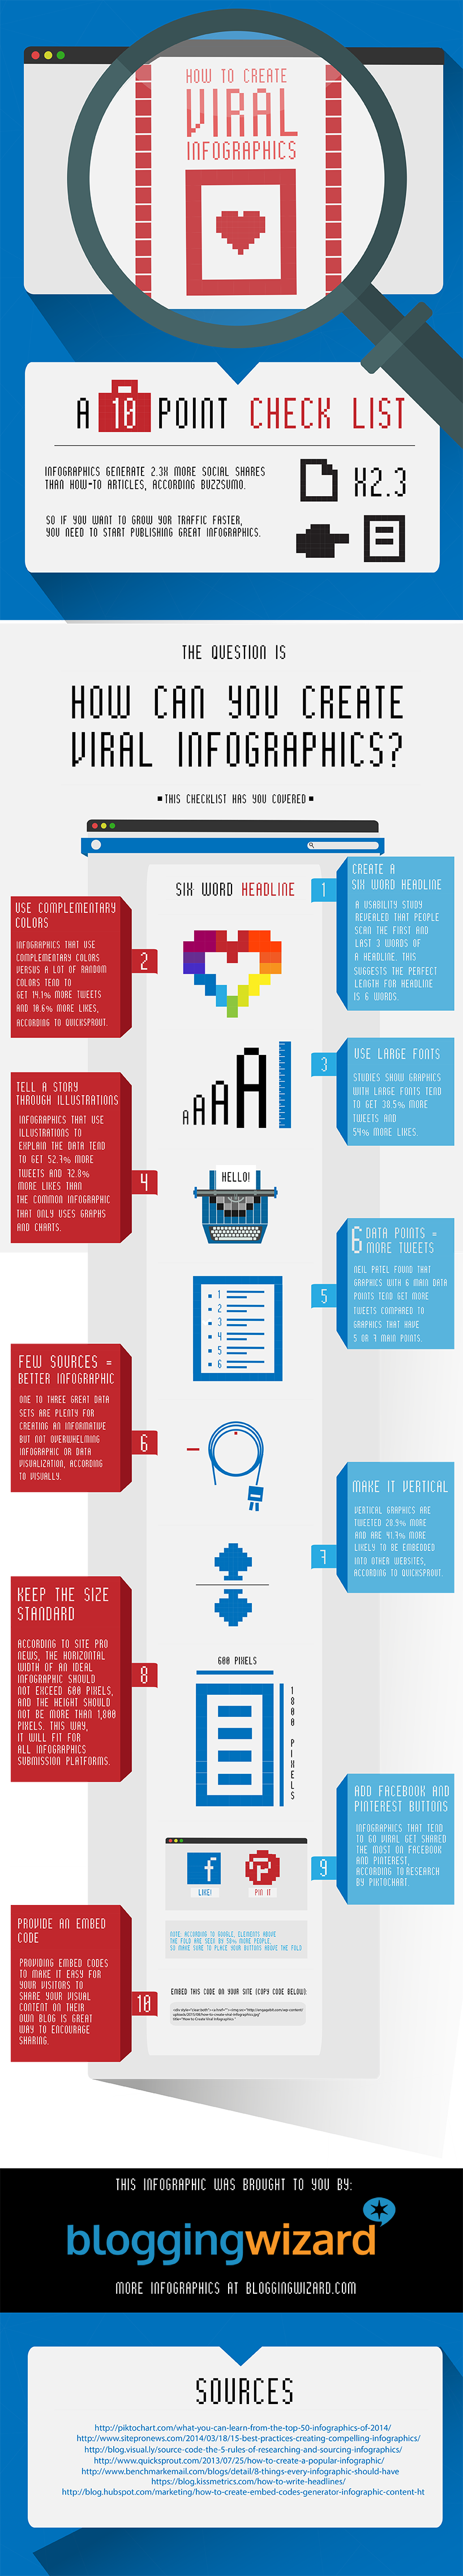 How To Create Viral Infographics